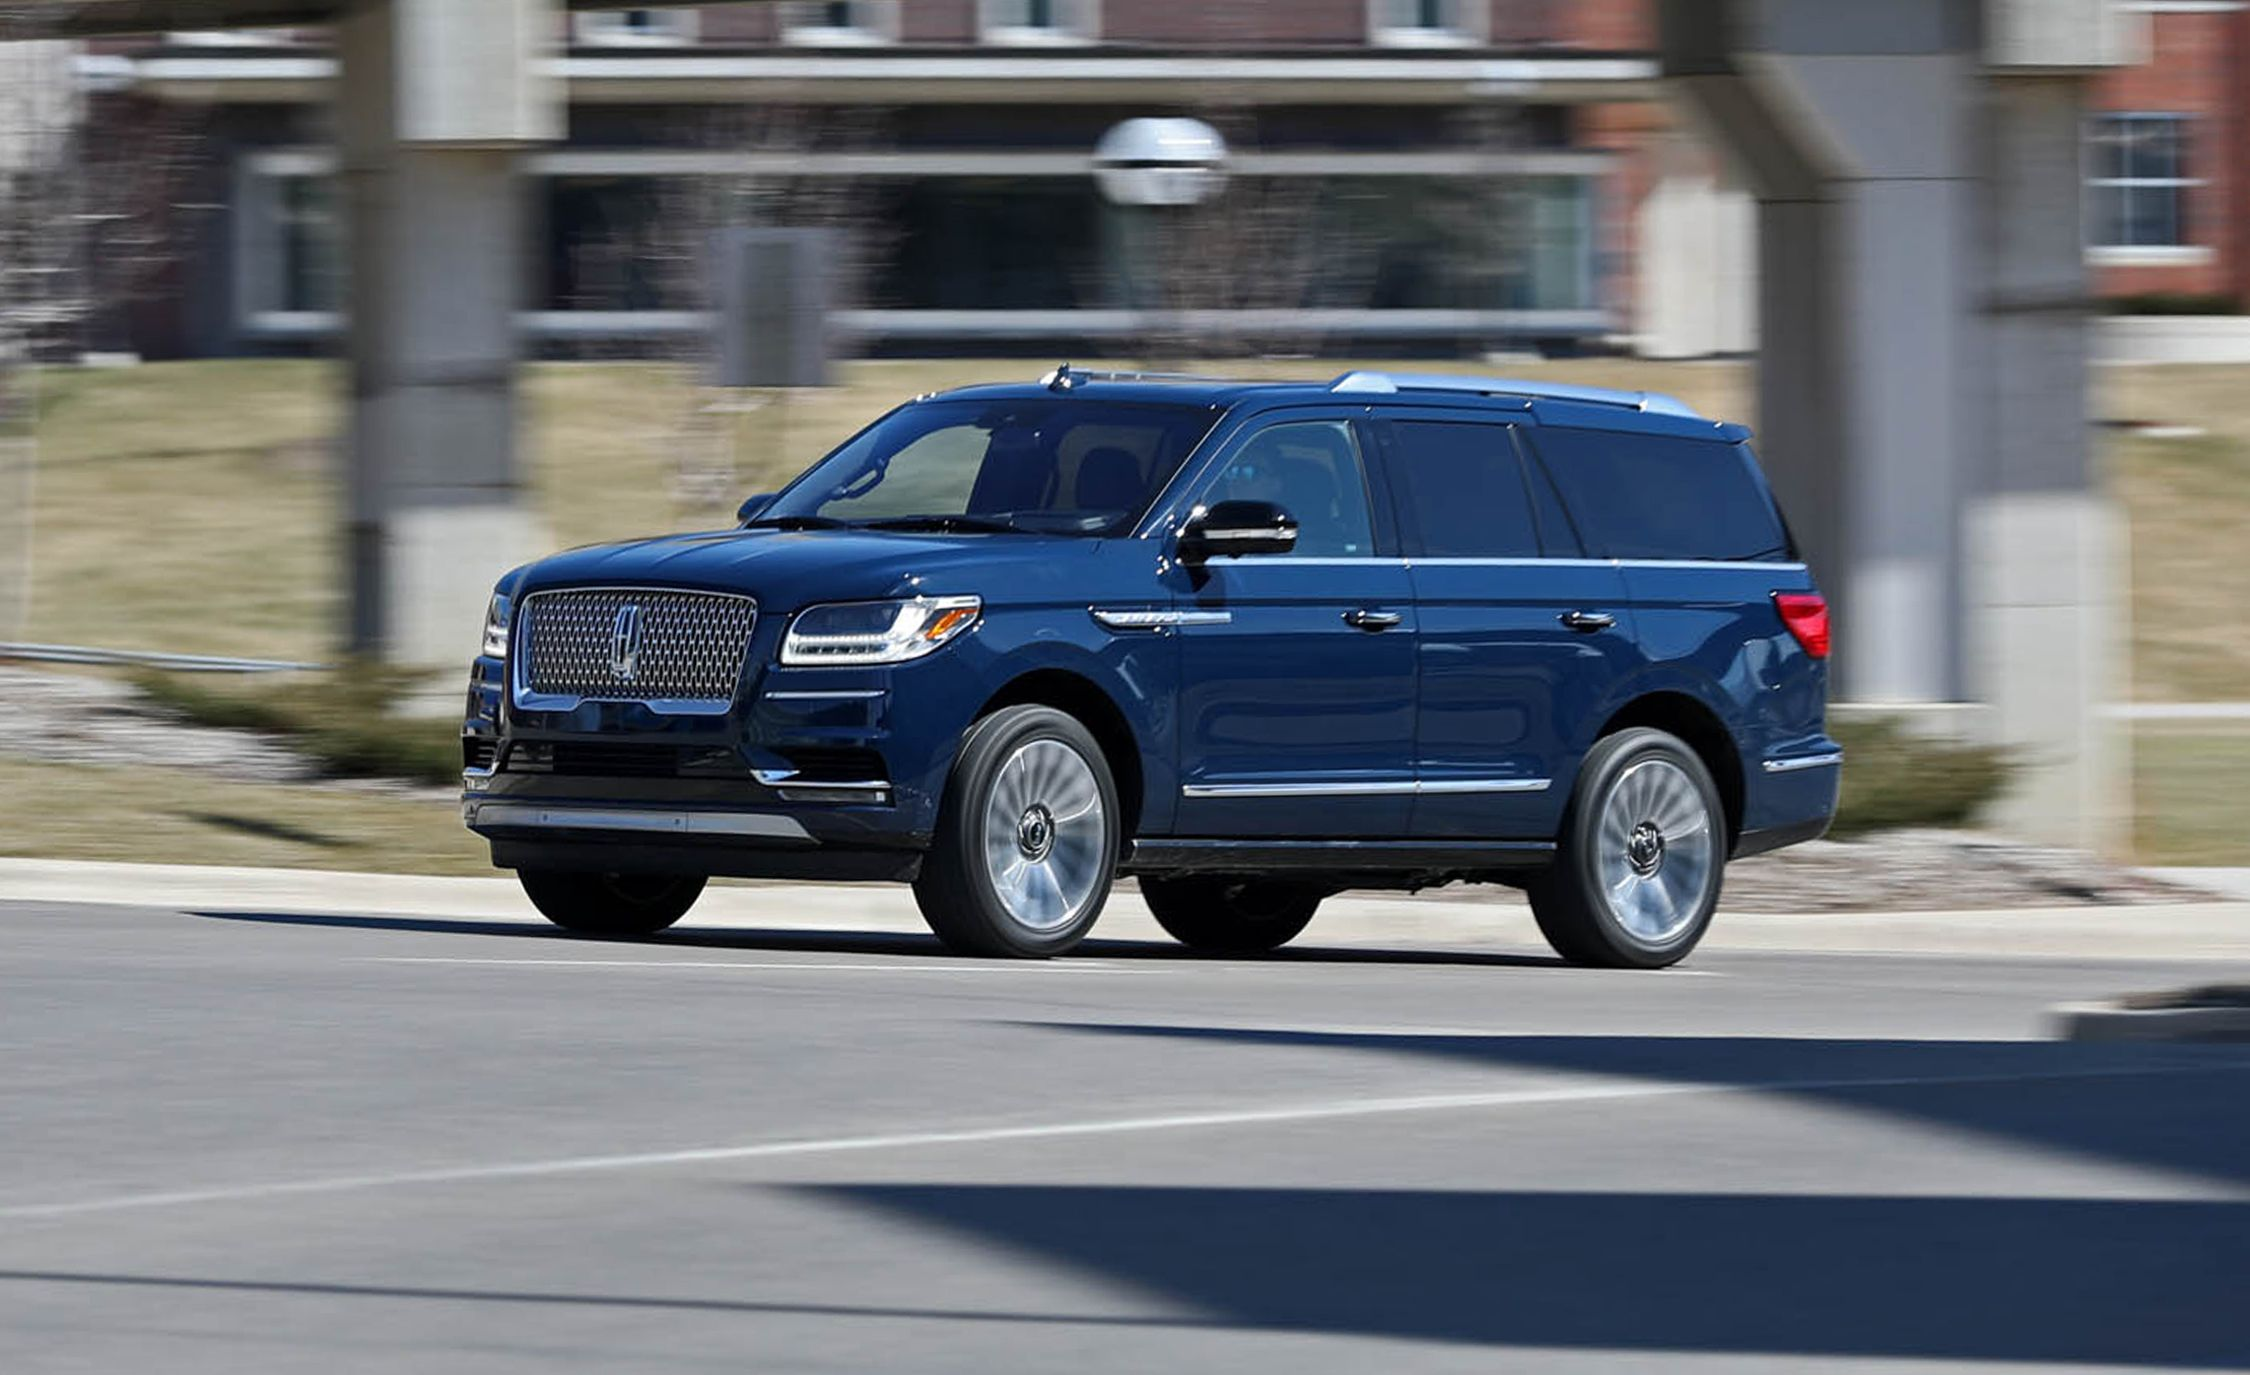 2018 Lincoln Navigator 4x4 Tested: Three Tons of SUV